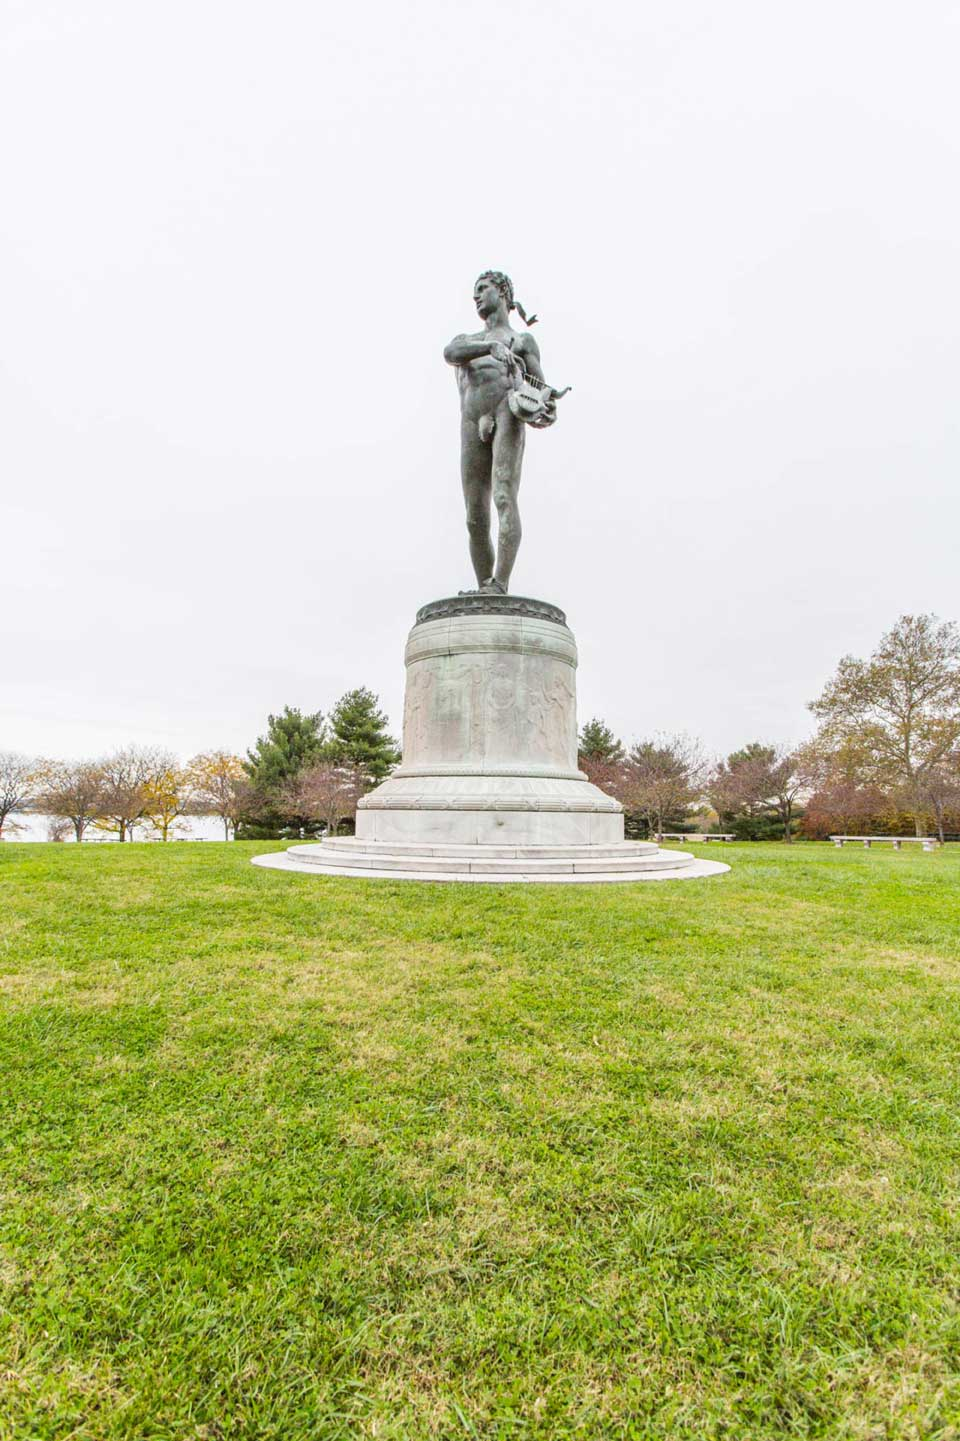 Statue in park in Locust Point, Baltimore, MD